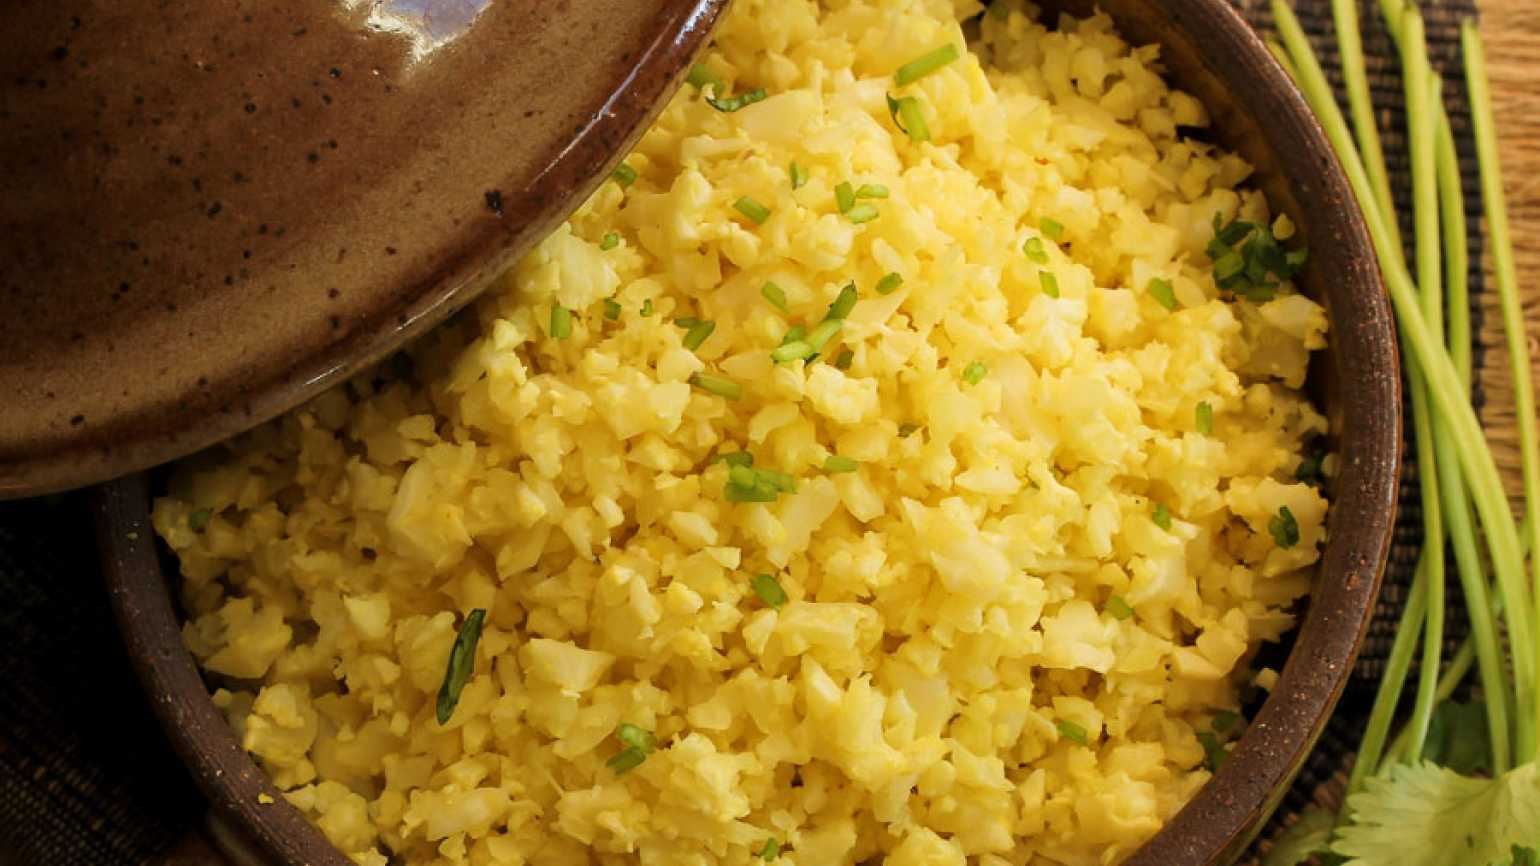 Guideposts: Cauliflower Rice